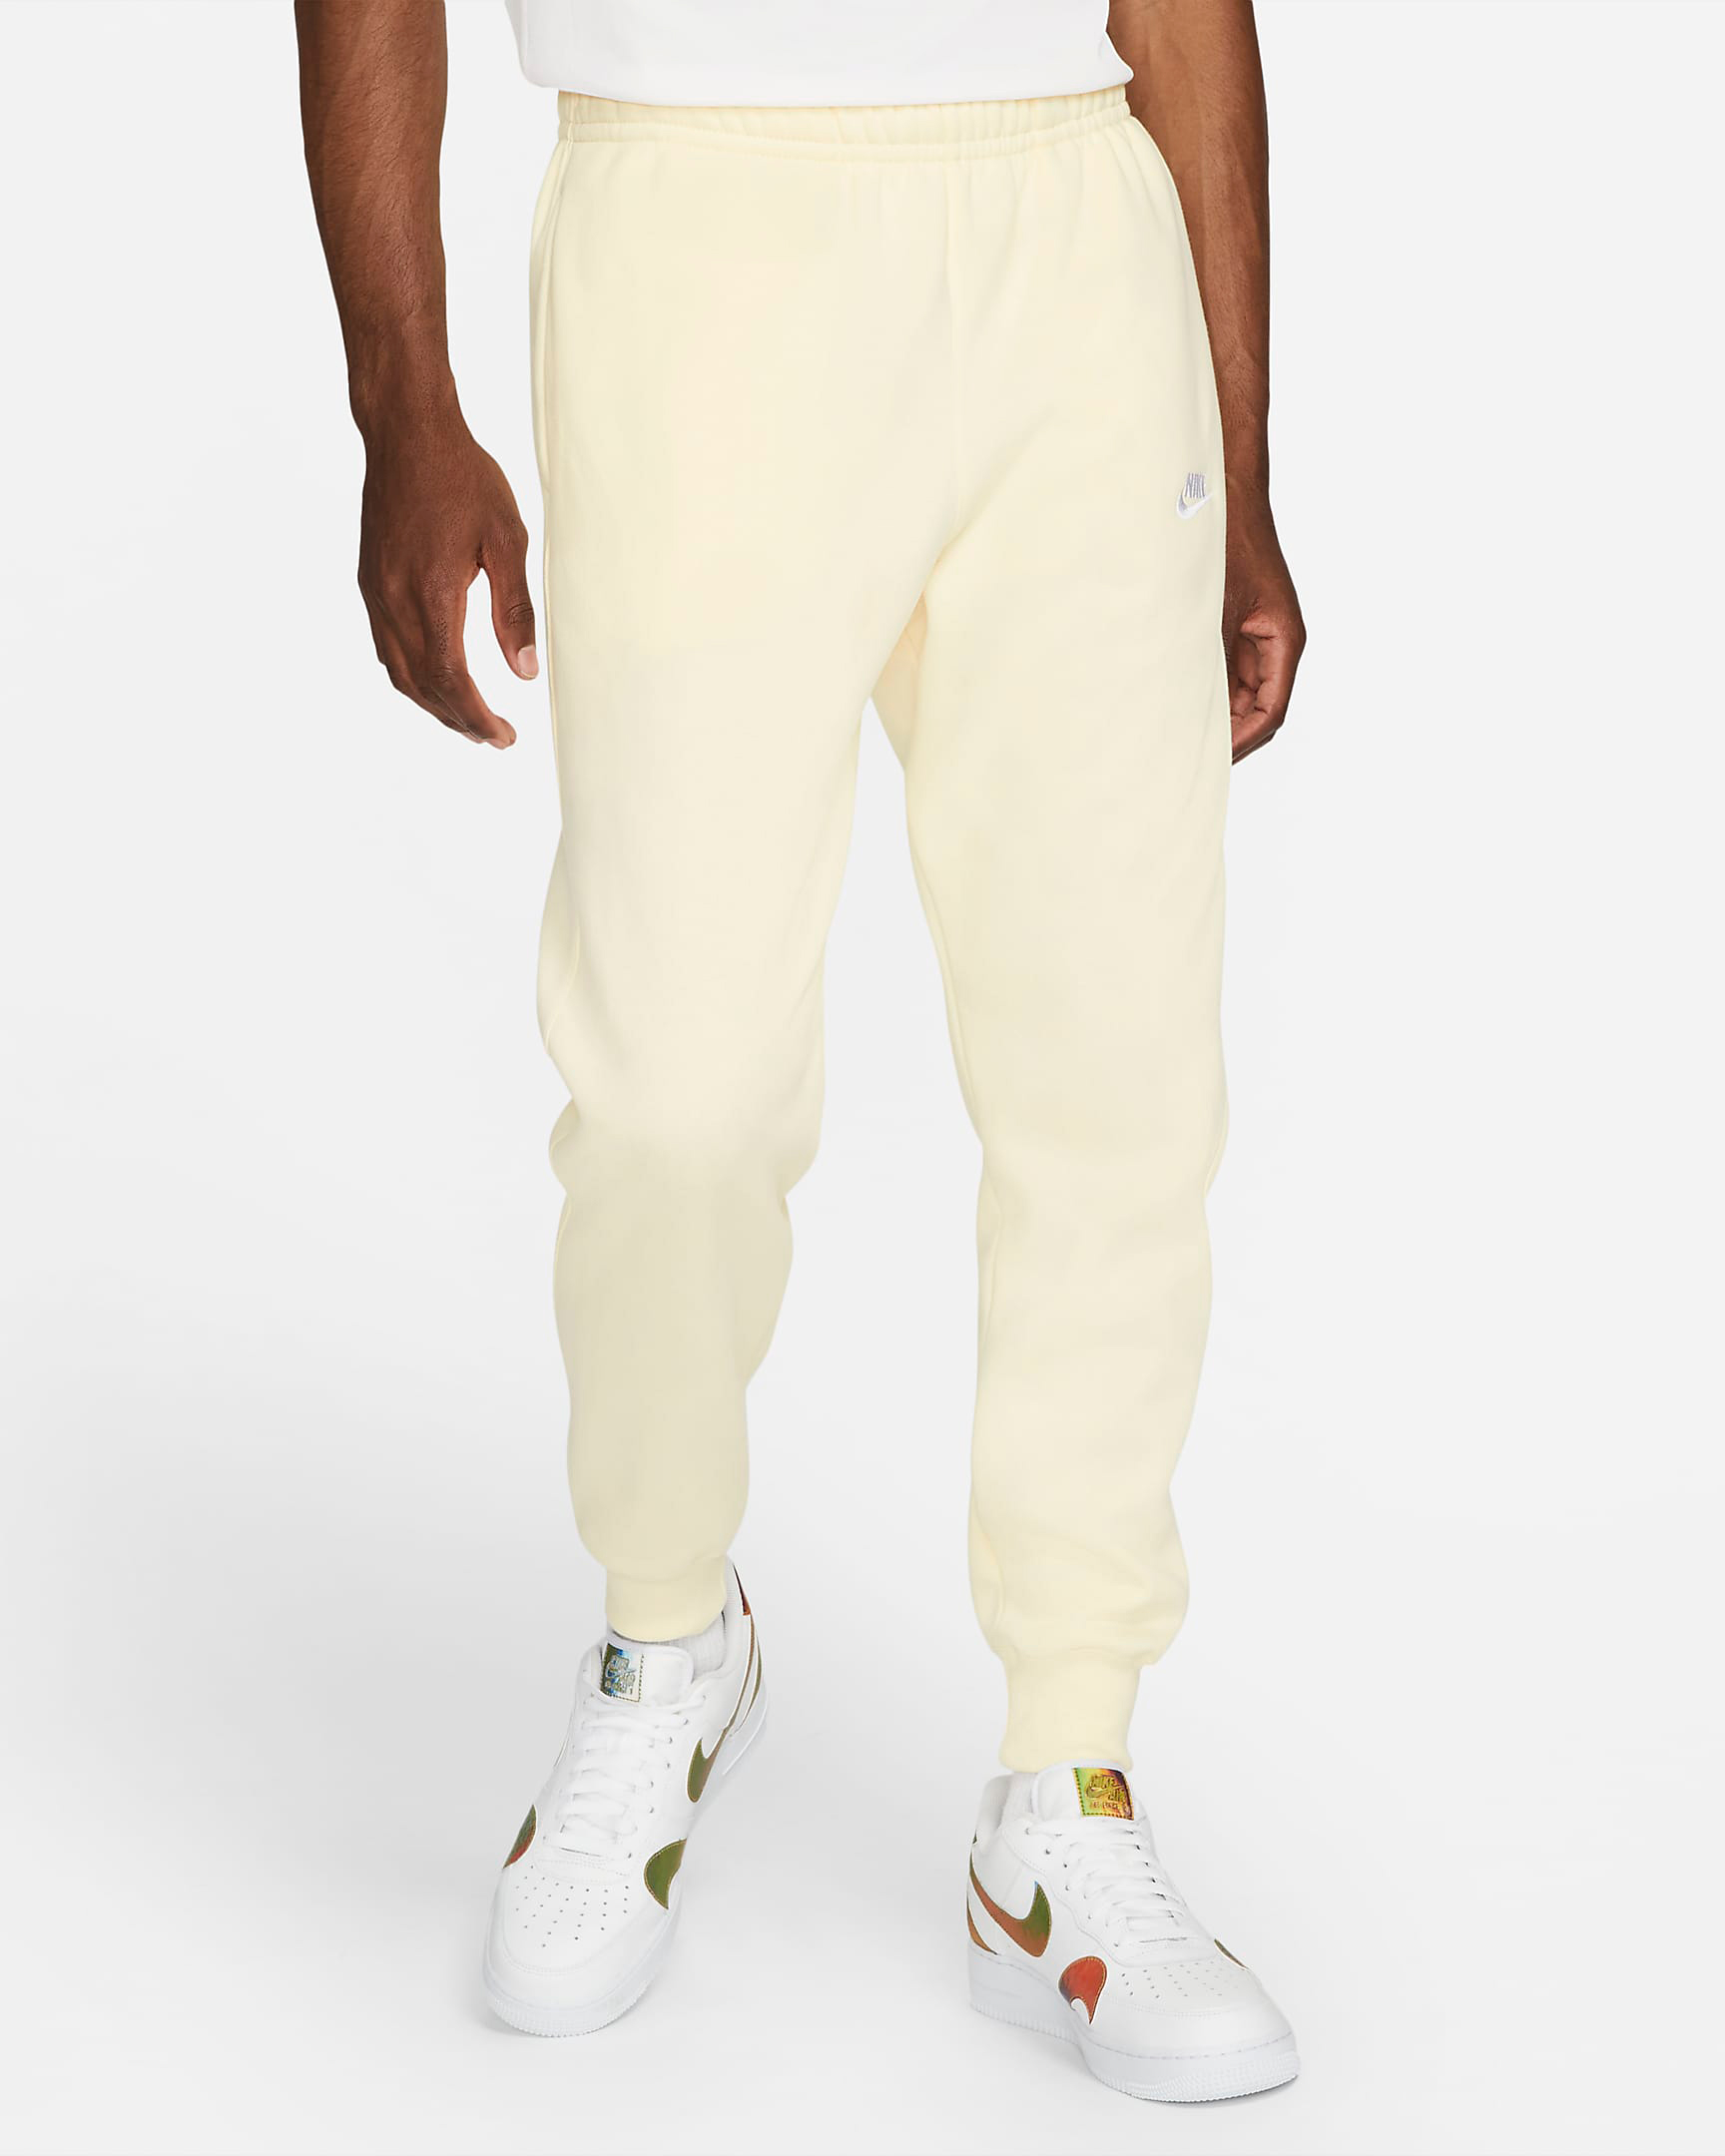 nike-club-fleece-joggers-coconut-milk-1